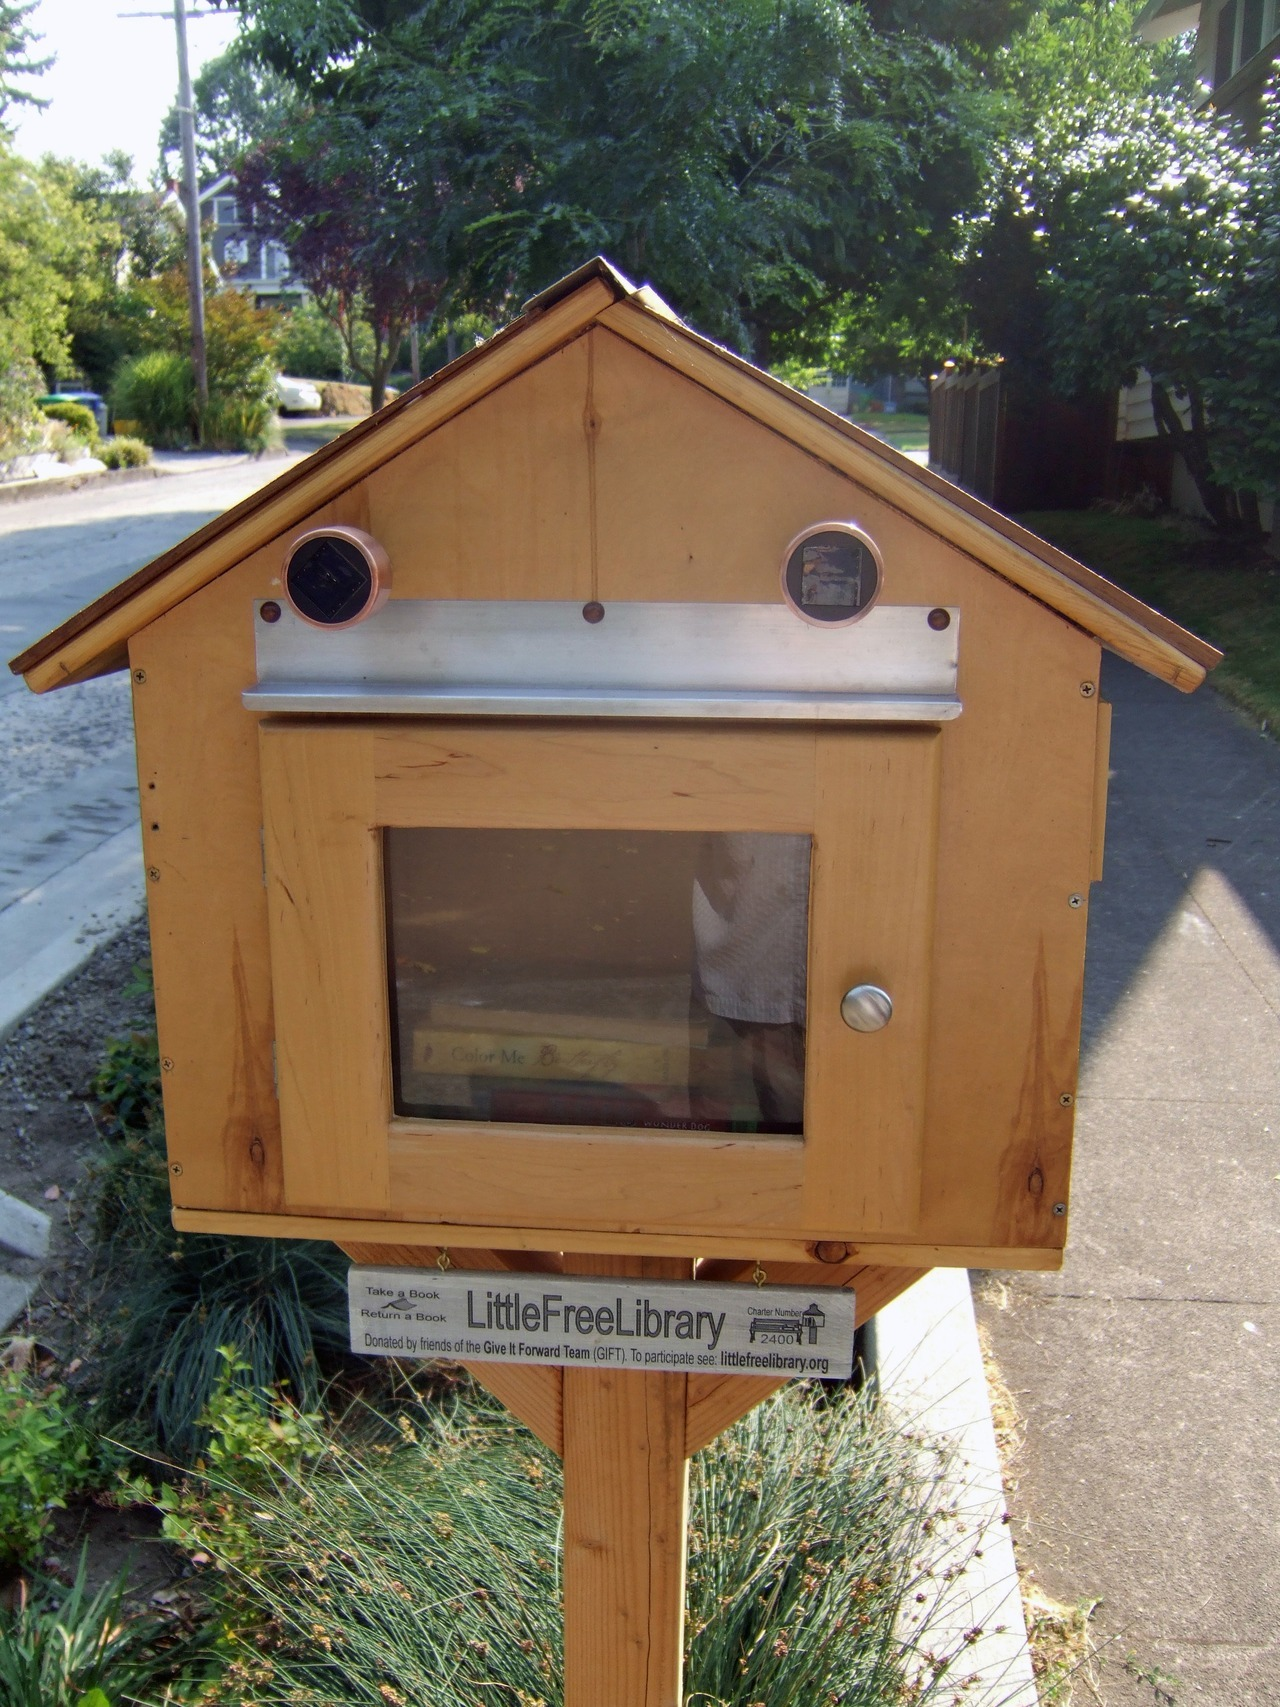 This is a neat idea, little free library boxes. There's a new one up our street ~ SE 30th and Main. This one is around SE 58th and Hawthorne. It's even got solar panels and a little light. The one by our house had some Jane Austin. Someone took it, she's pretty popular.